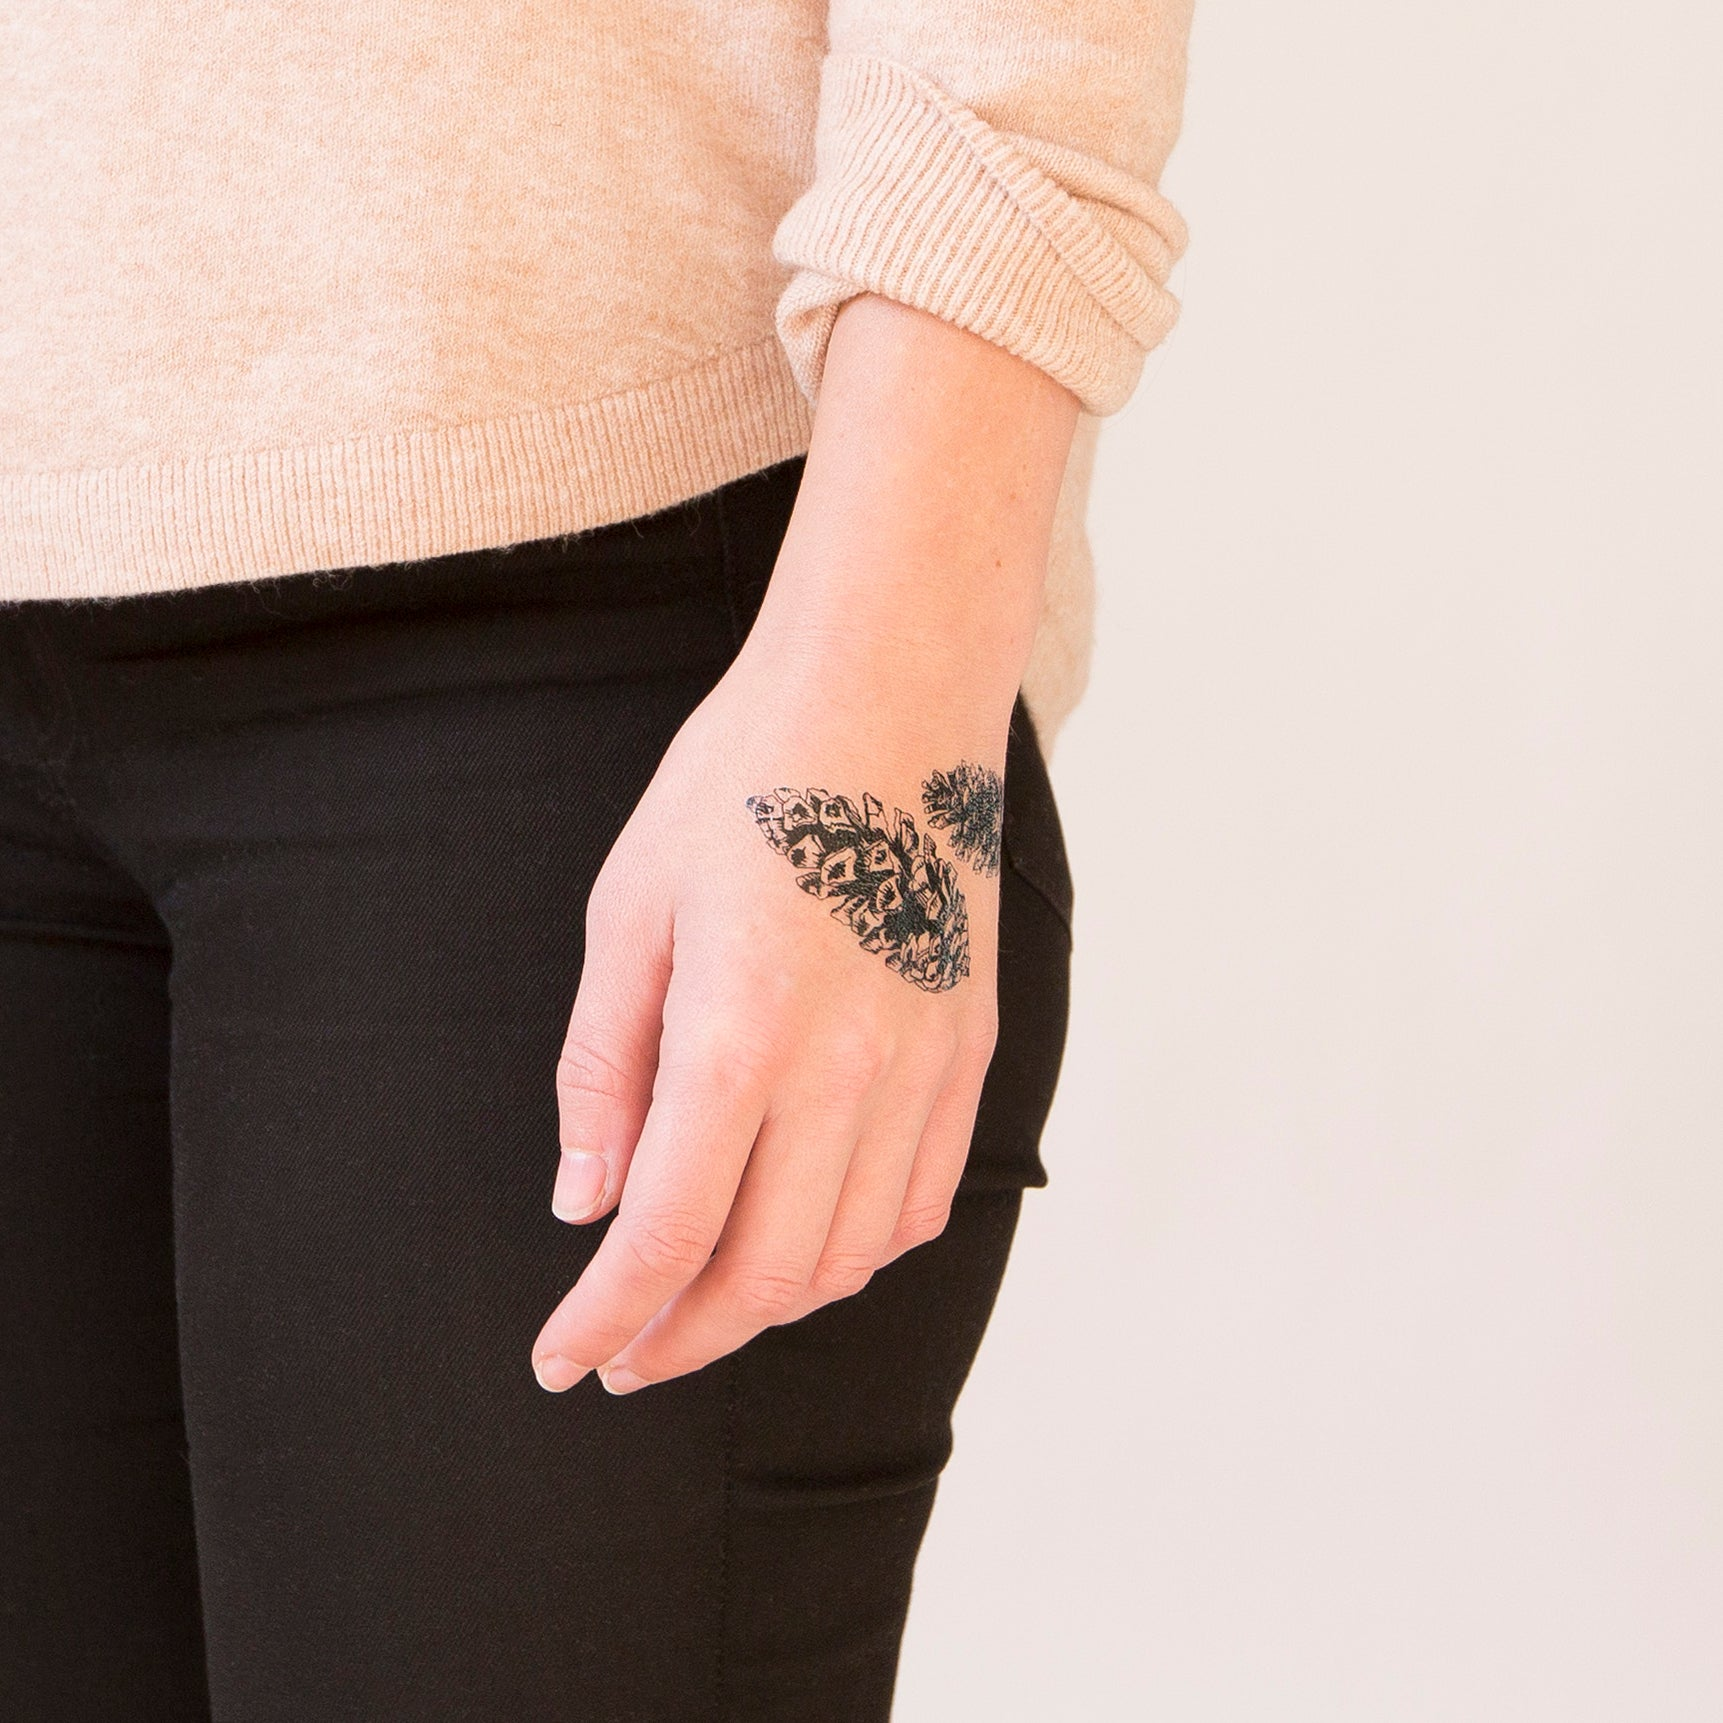 Pinecones By Natasha Lawyer From Tattly Temporary Tattoos